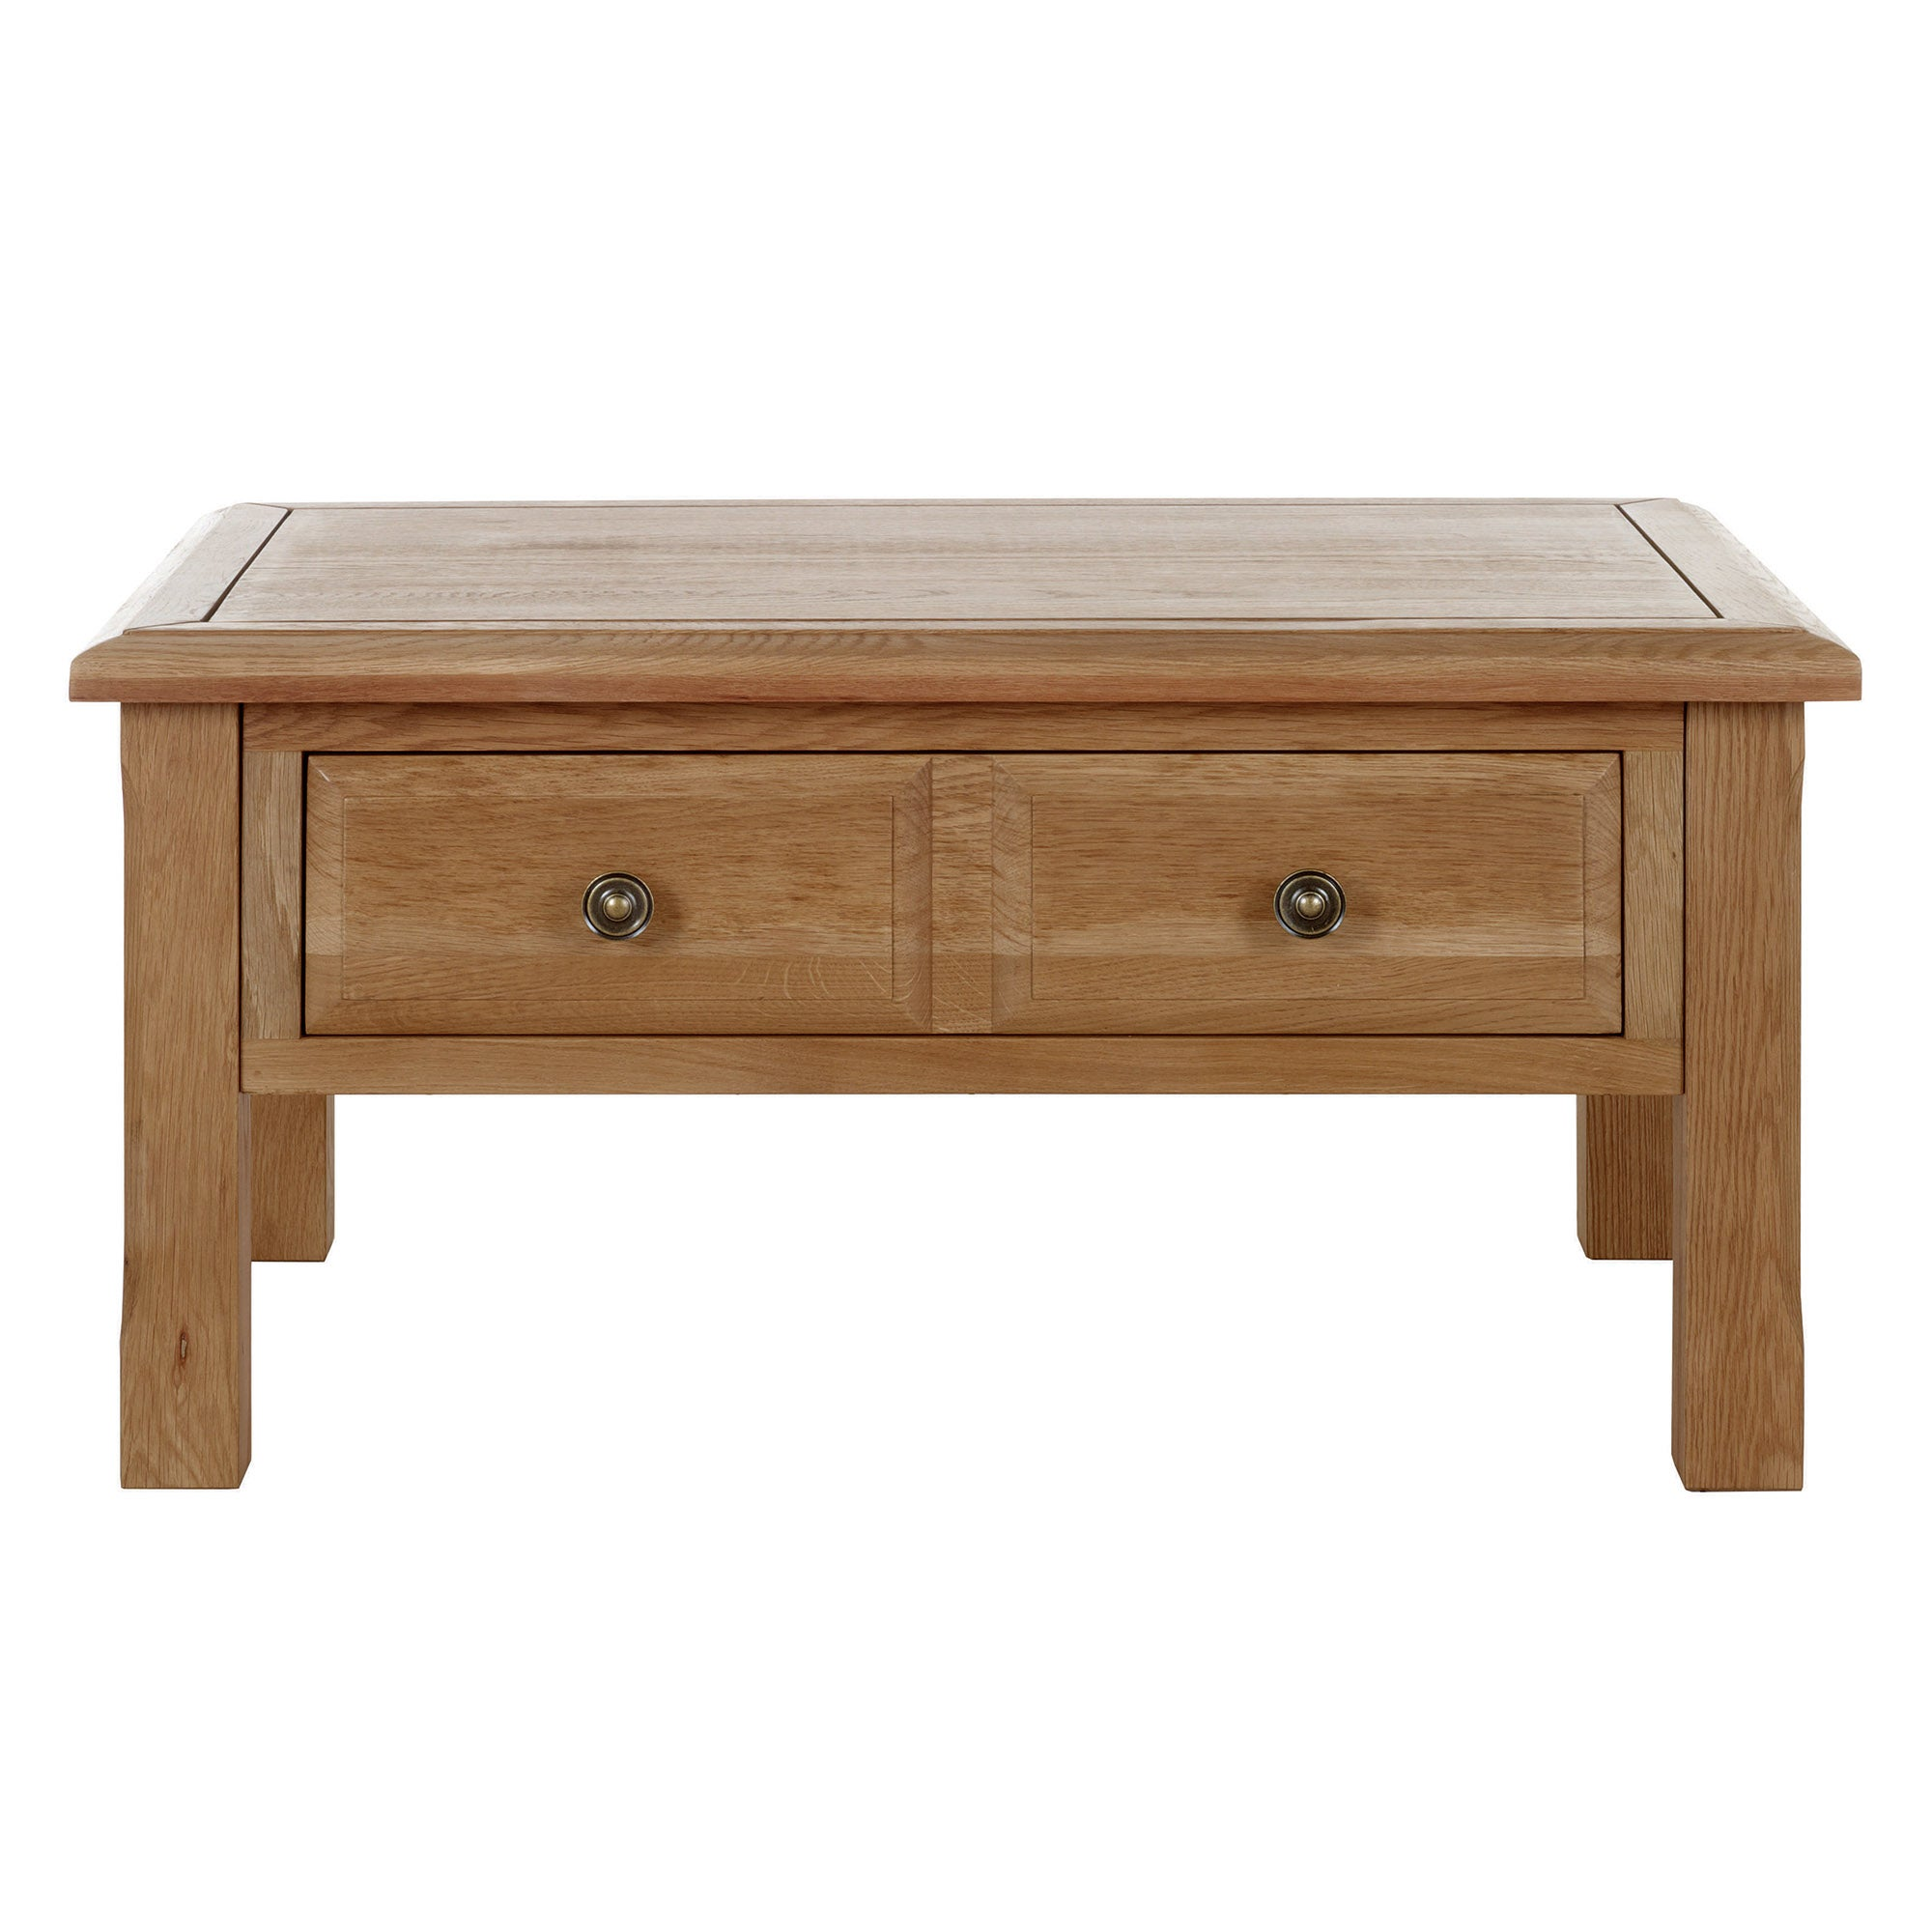 Gainsborough Oak Small Coffee Table